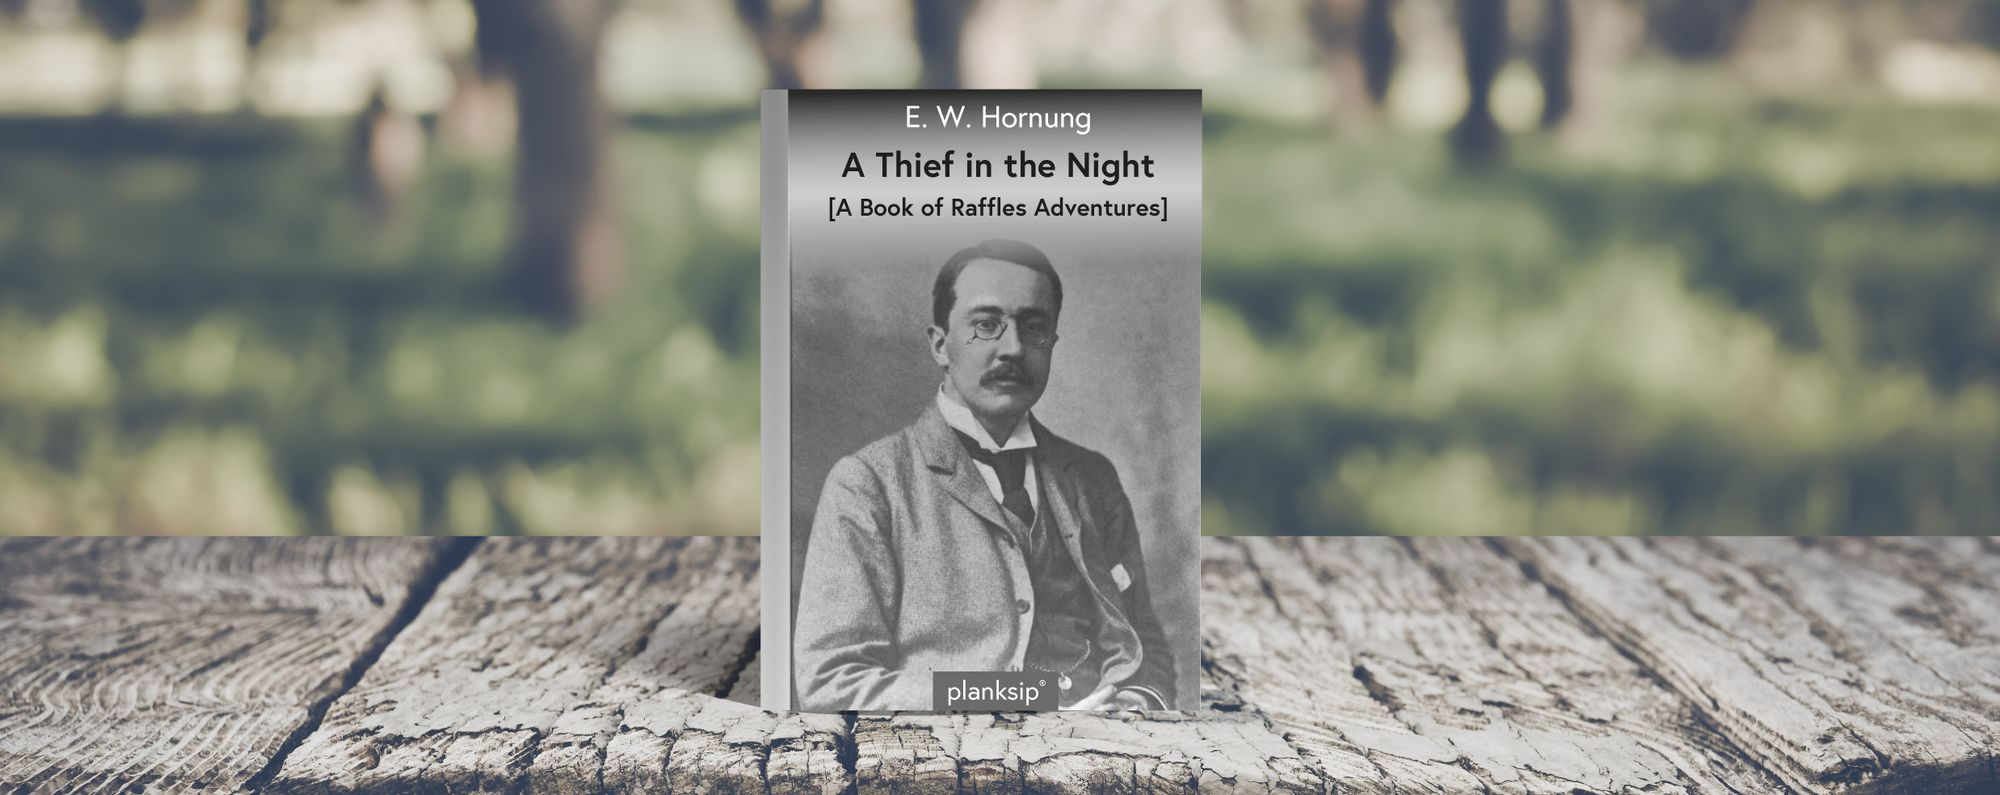 A Thief in the Night by E.W. Hornung (1866-1921). Published by planksip